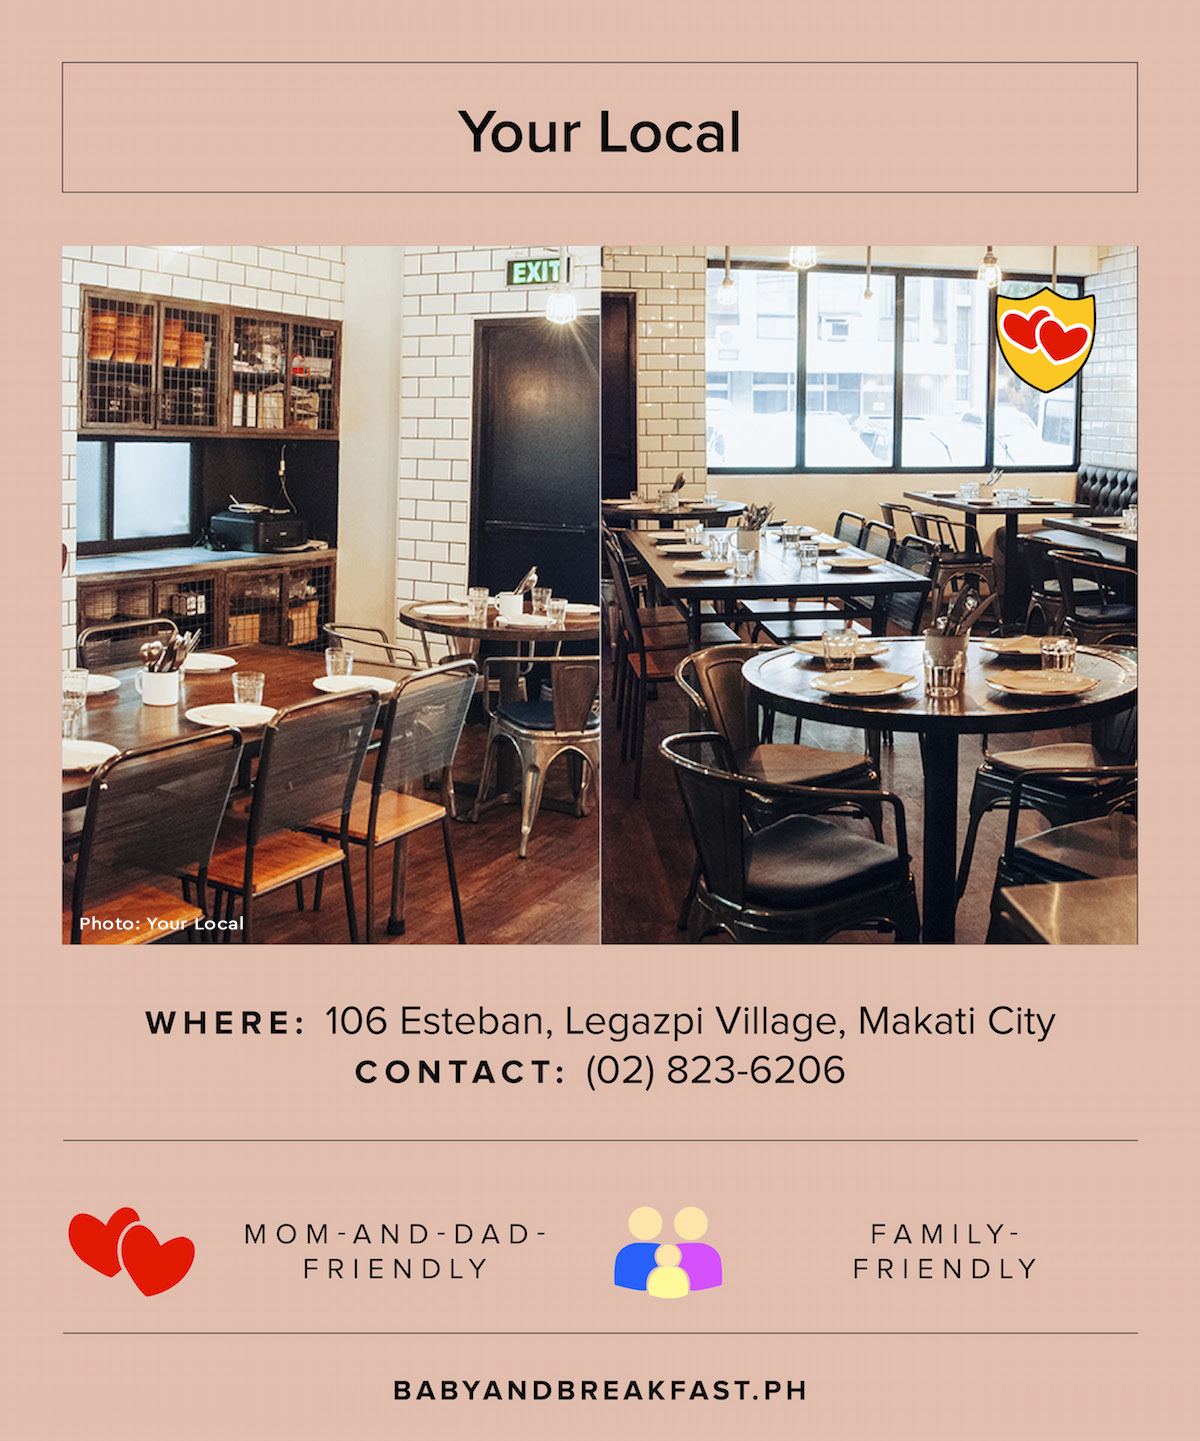 Your Local Where: 106 Esteban, Legazpi Village, Makati City Contact: (02) 823-6206 Mom-and-Dad-Friendly Photo: Your Local